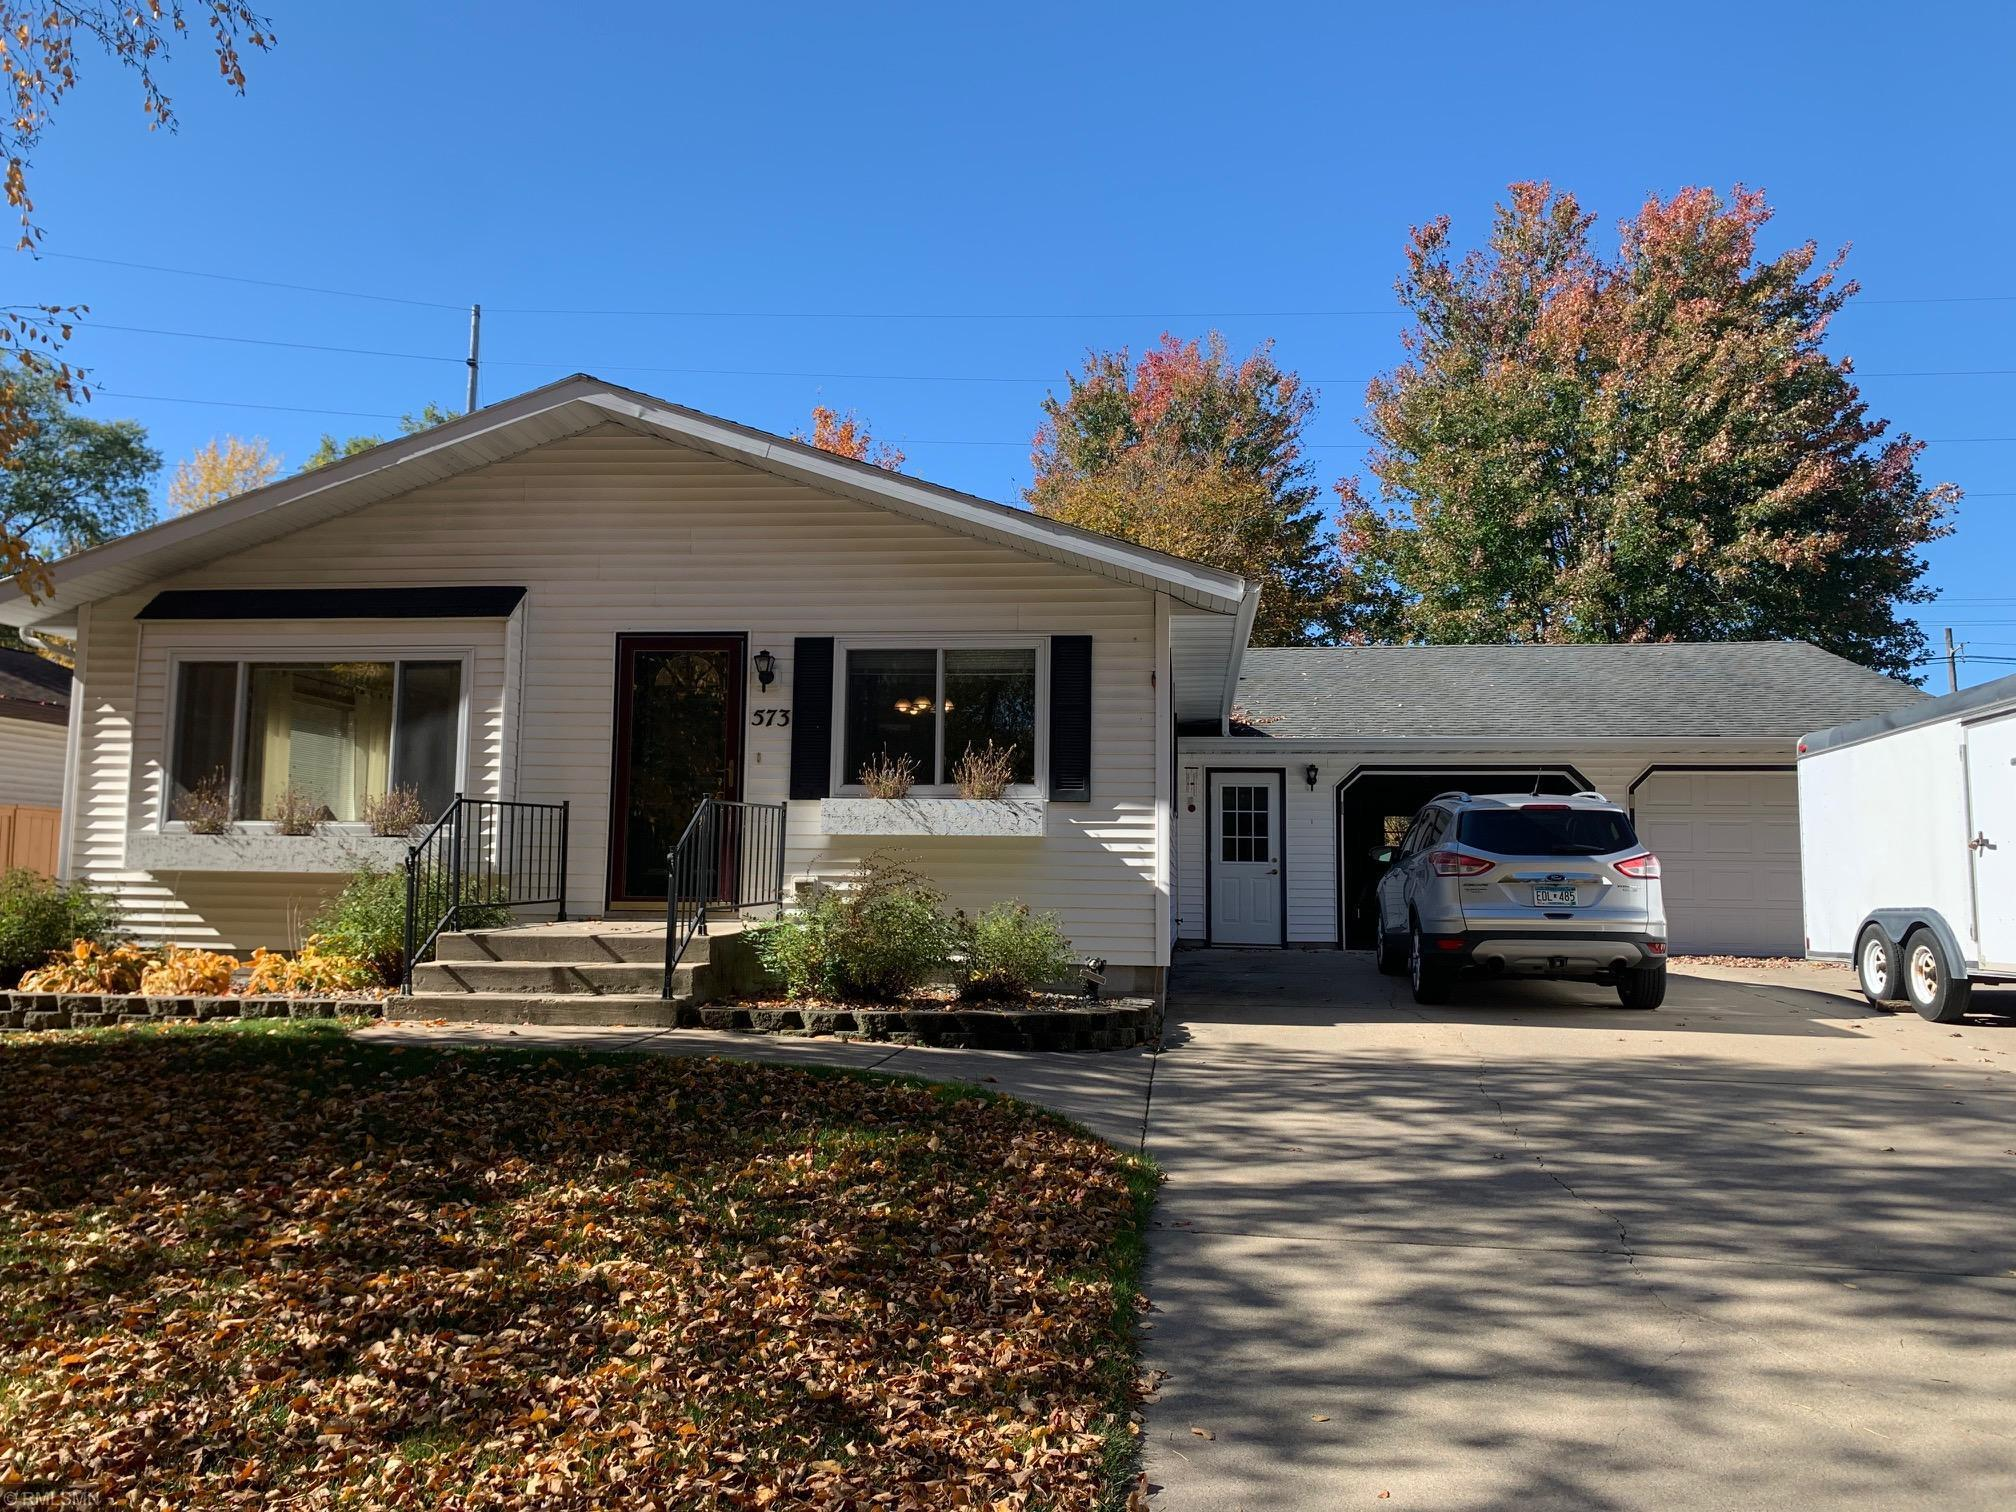 573 N Donnelly Avenue Property Photo - Litchfield, MN real estate listing